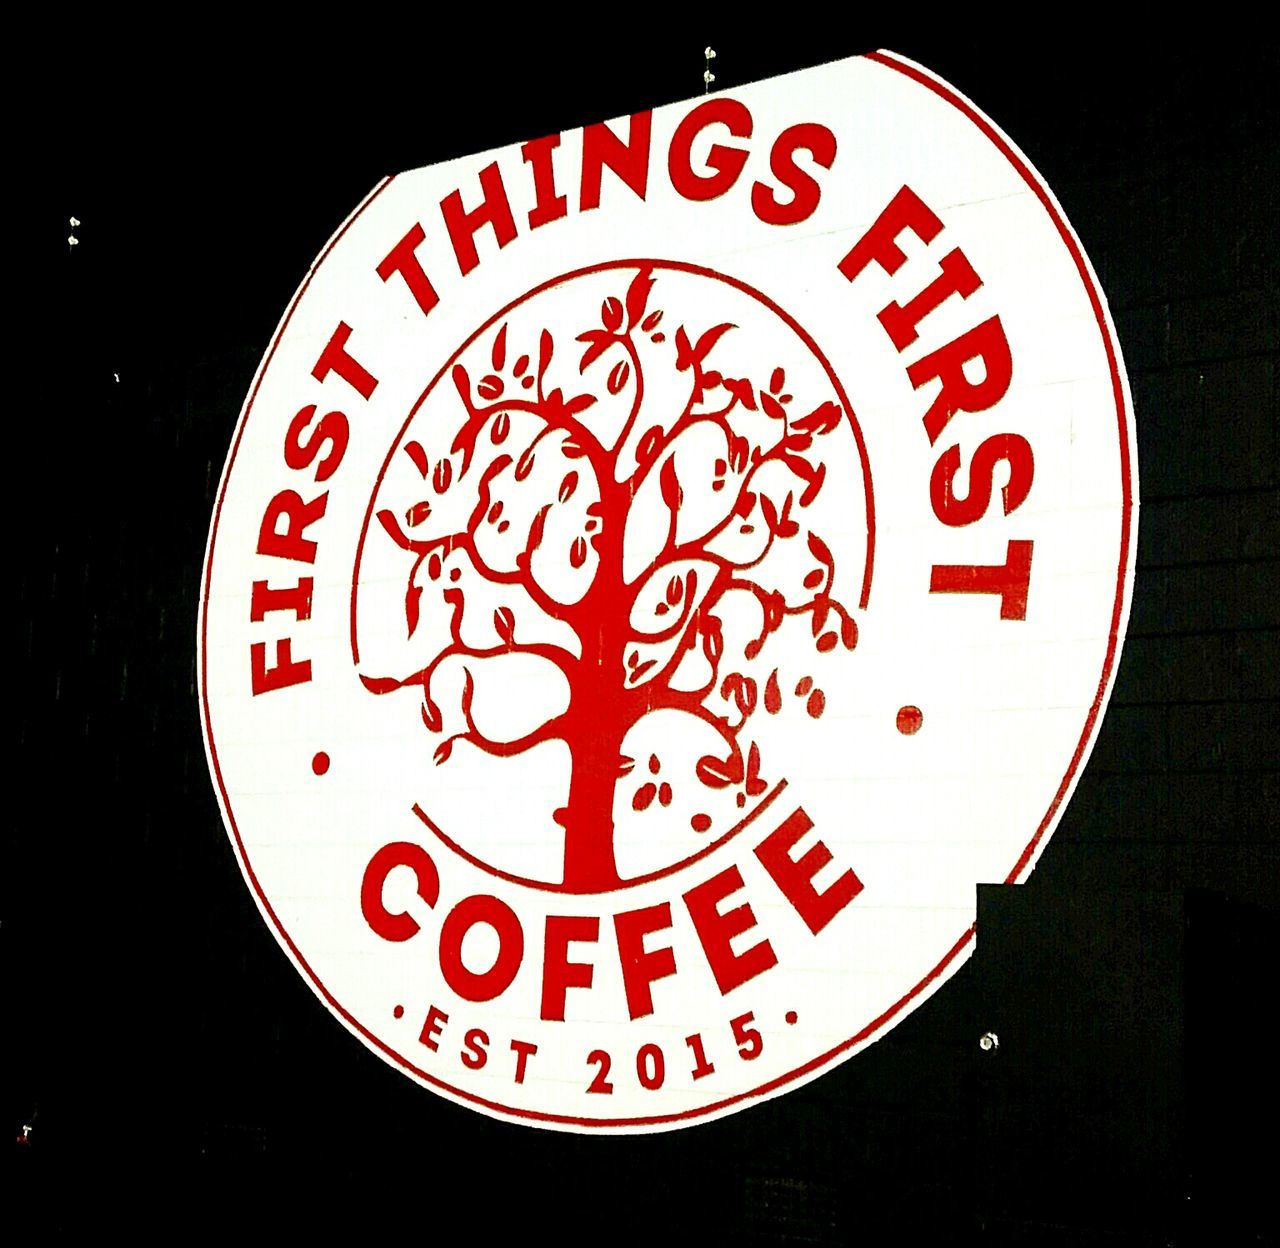 First Things First Coffee Shop Sign Cafe Coffee Koffee Est. 2015 Coffee ☕ Signs Signporn Signage Signs, Signs, & More Signs Signs_collection Signs & More Signs Signstalkers SIGNS. SIGN. Coffee Sign Signcollection Coffeeshop Coffeehouse Coffeeporn Illuminated Signs